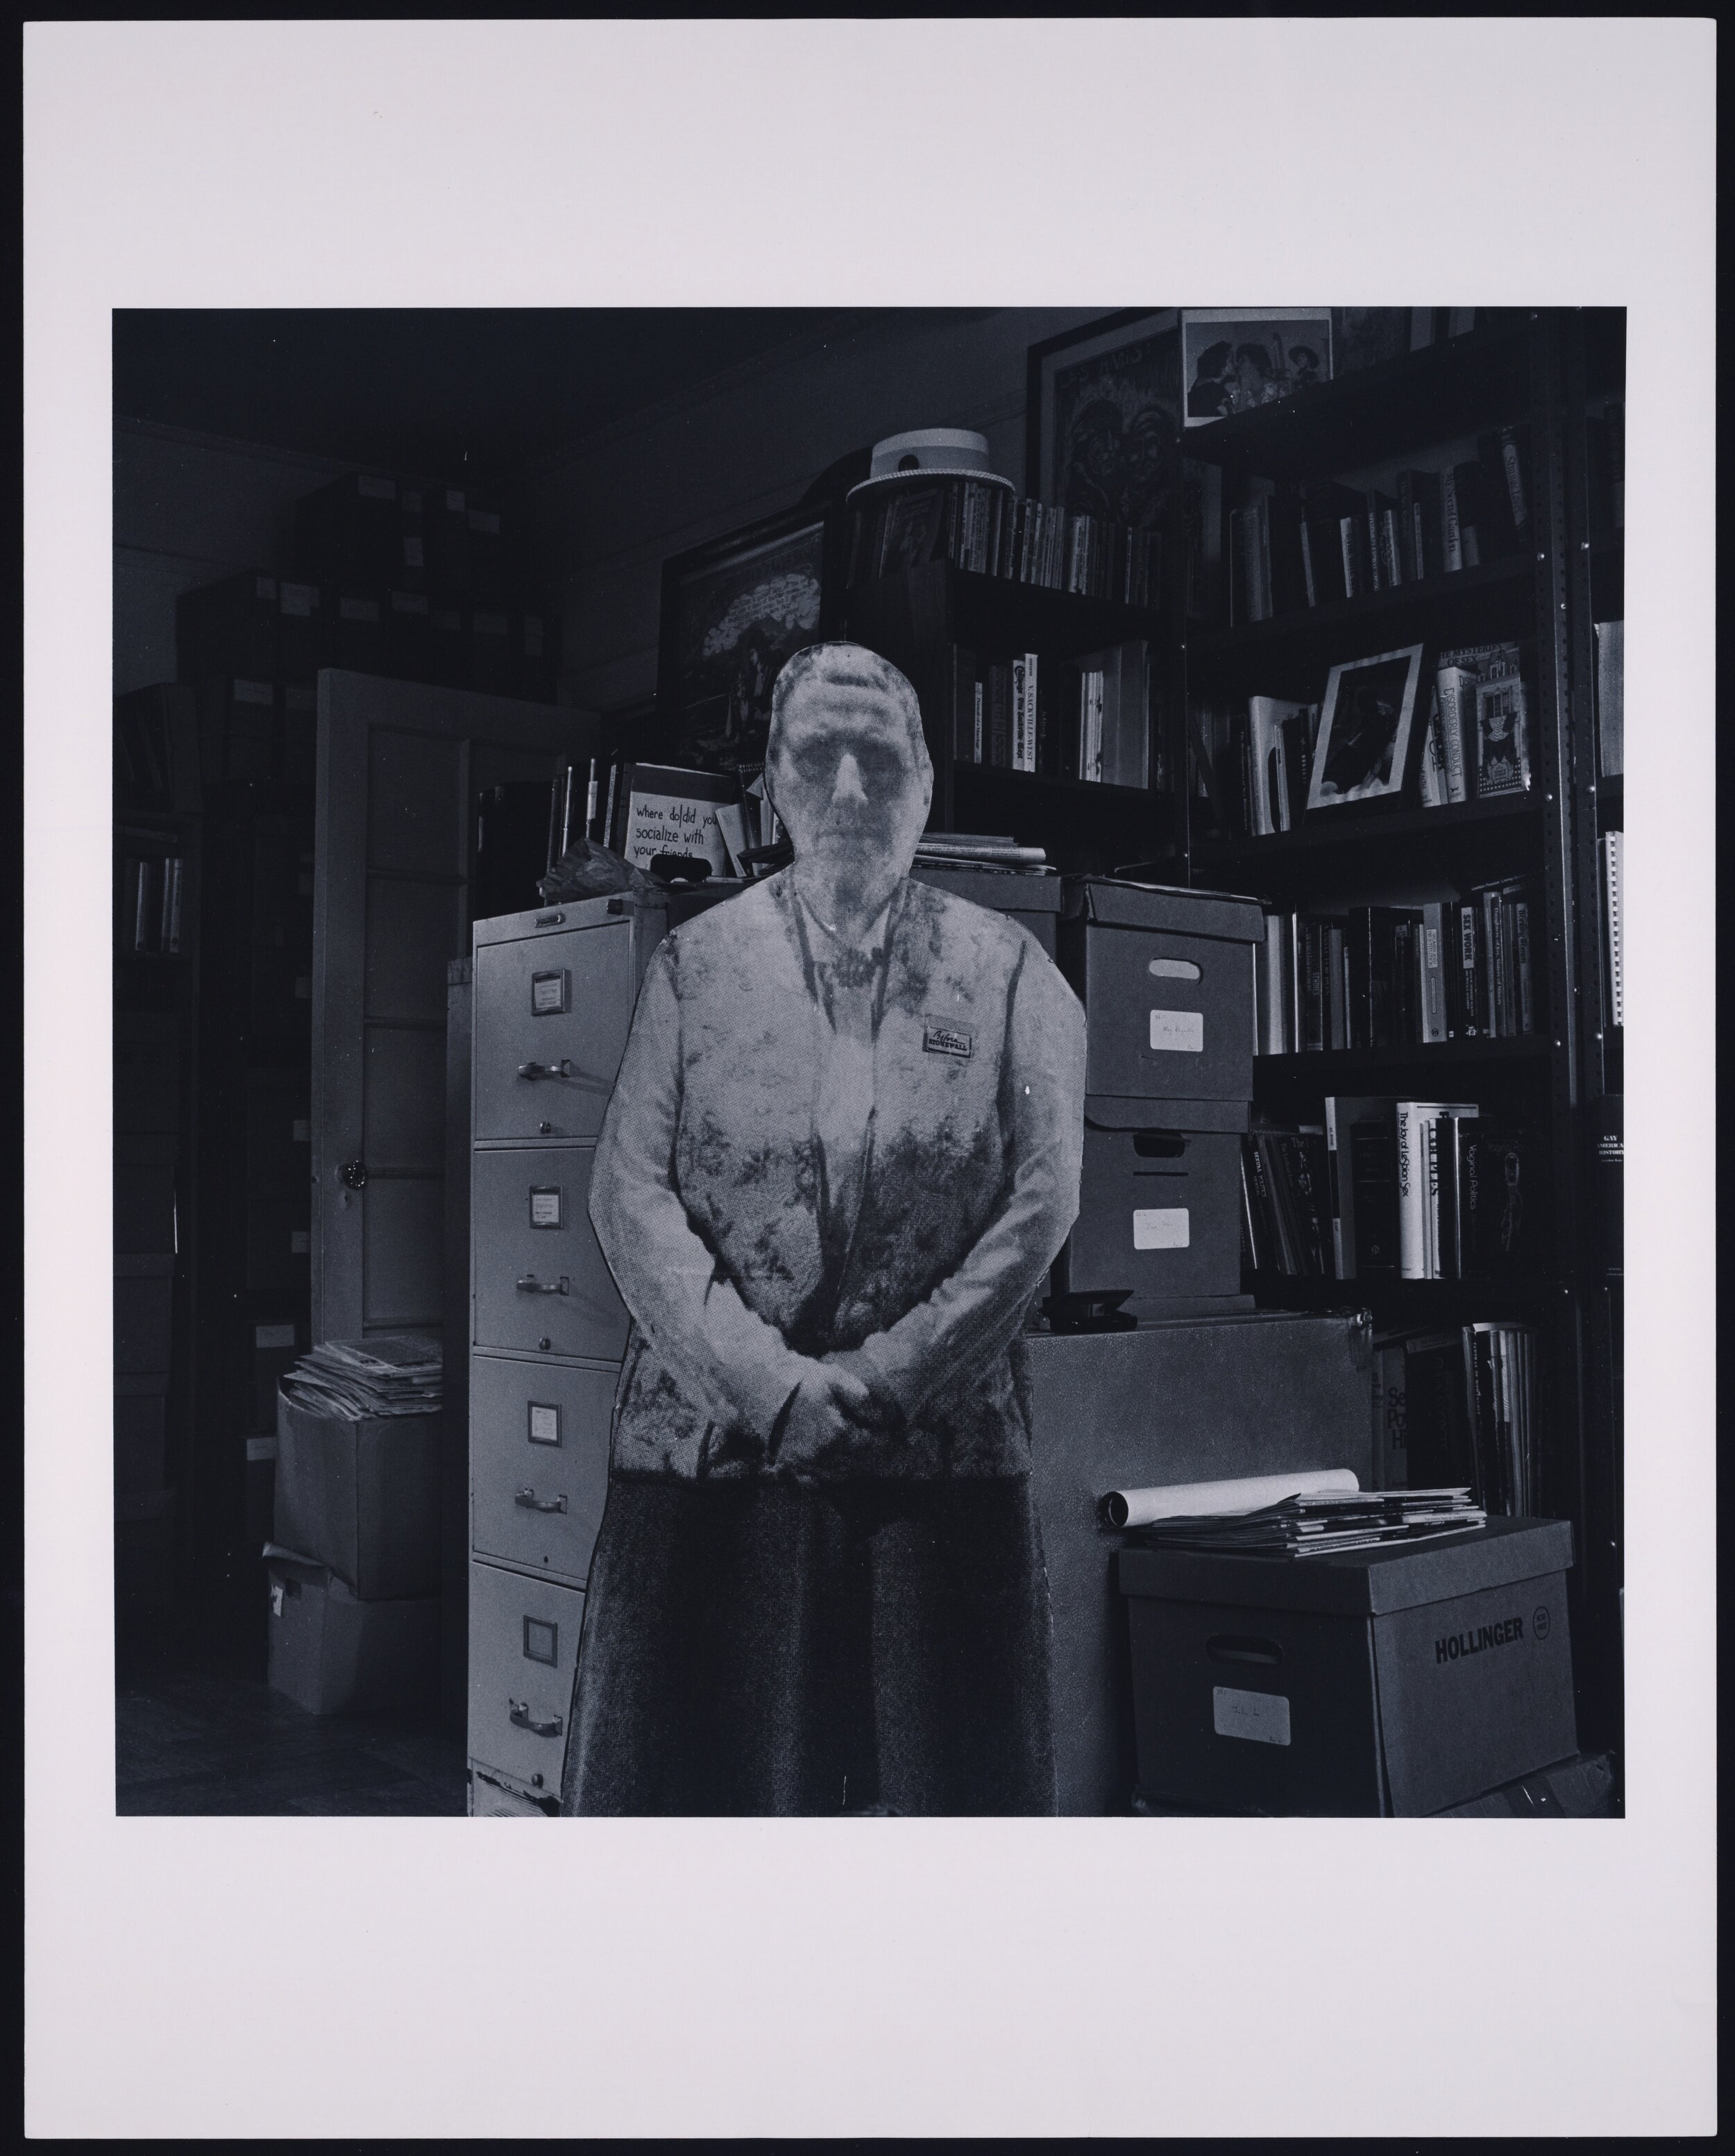 The Ghost of Gertrude Stein Visits the Lesbian Herstory Archive.jpg